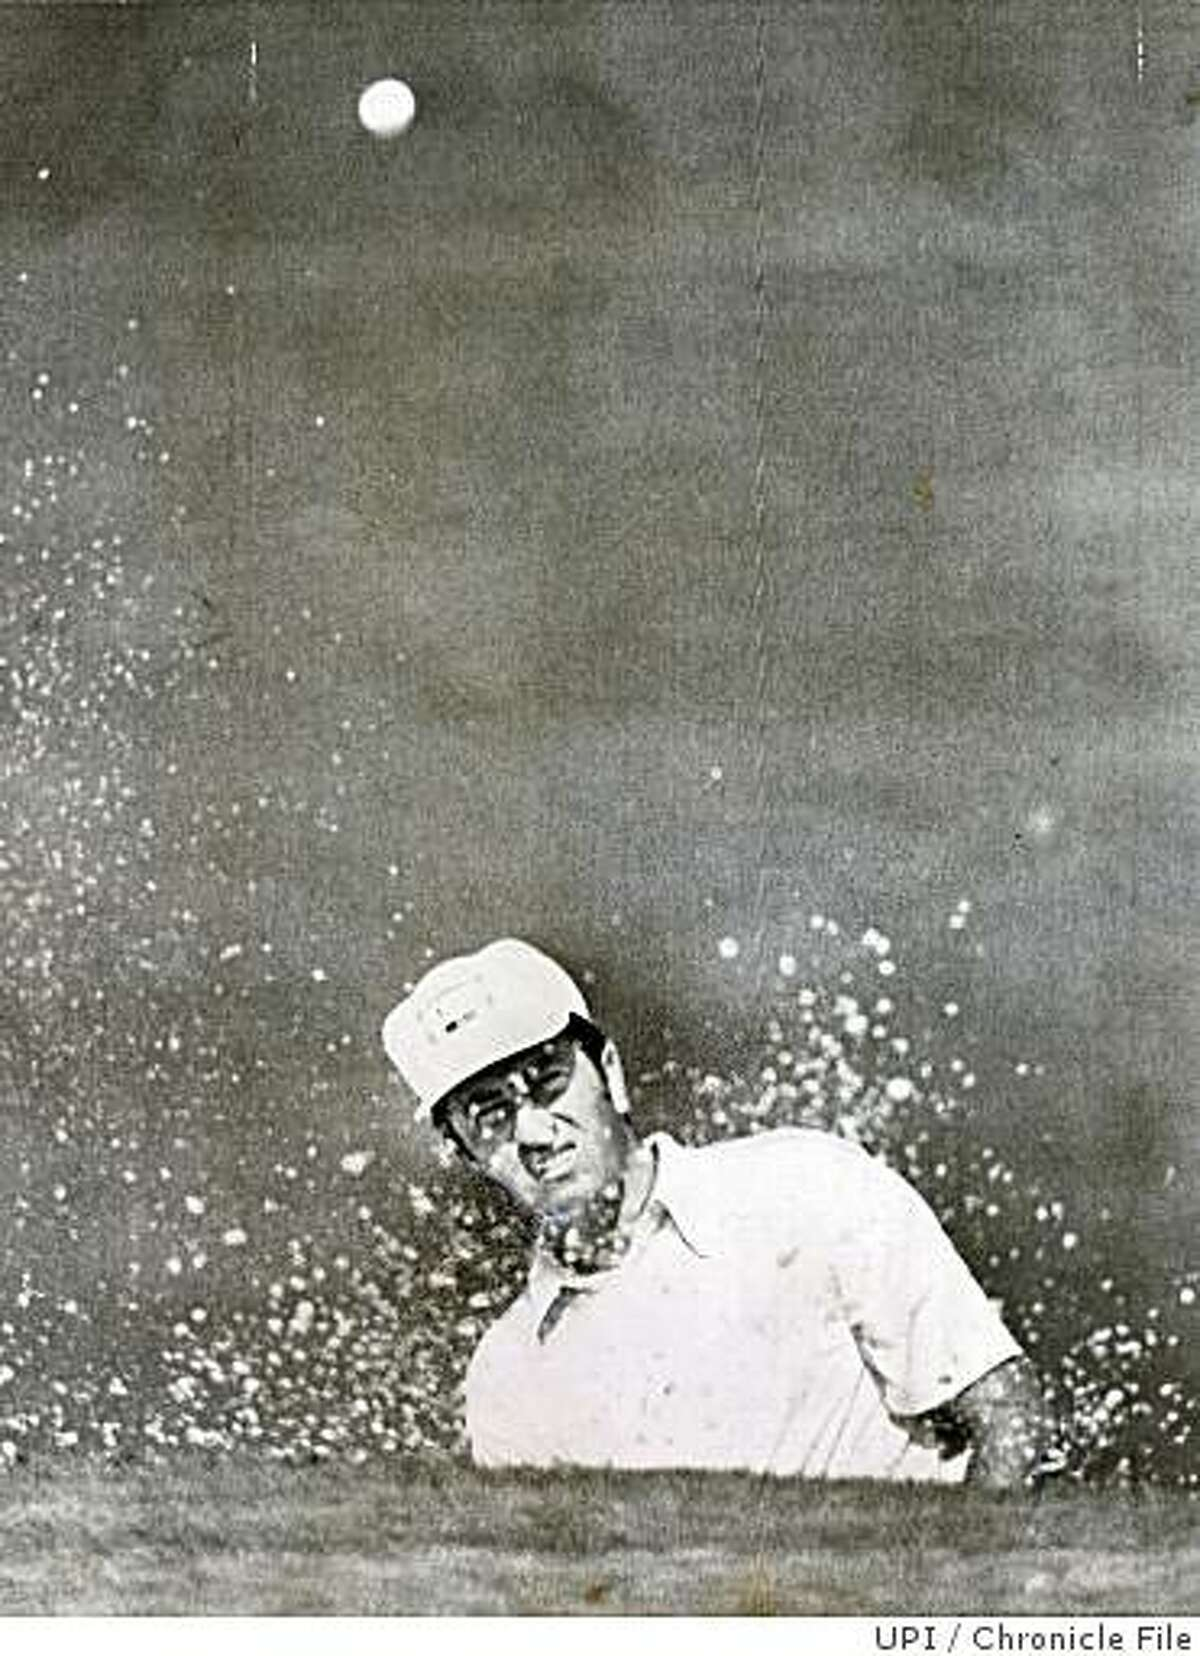 Masters07.jpg April 6, 1972 - (MASTERS GOLF) AUGUSTA, GA: George Archer is almost lost from view as he goes behind a small hill to blast out of a sand trap during the opening round of the Masters.UPI Chronicle File